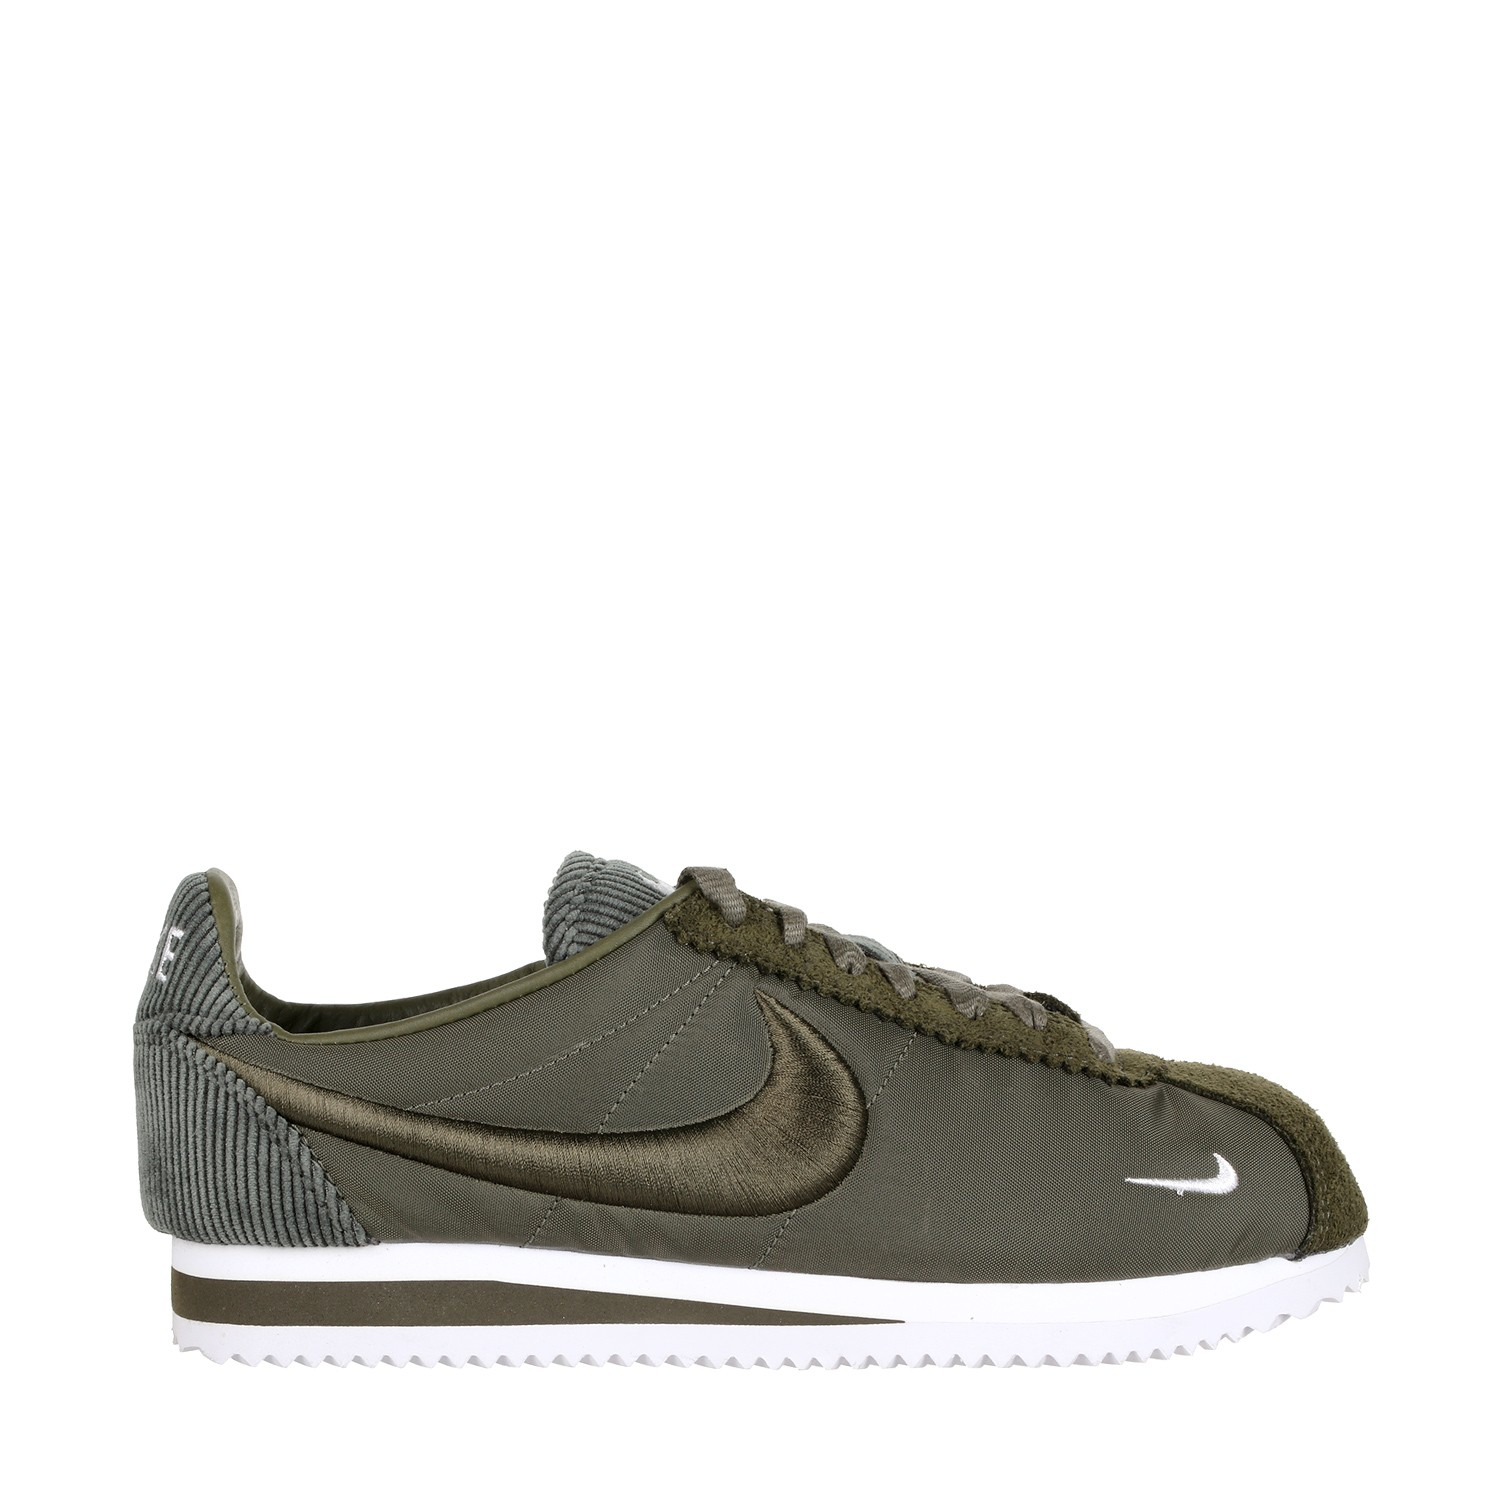 nike classic cortez sp cord in green for men lyst. Black Bedroom Furniture Sets. Home Design Ideas